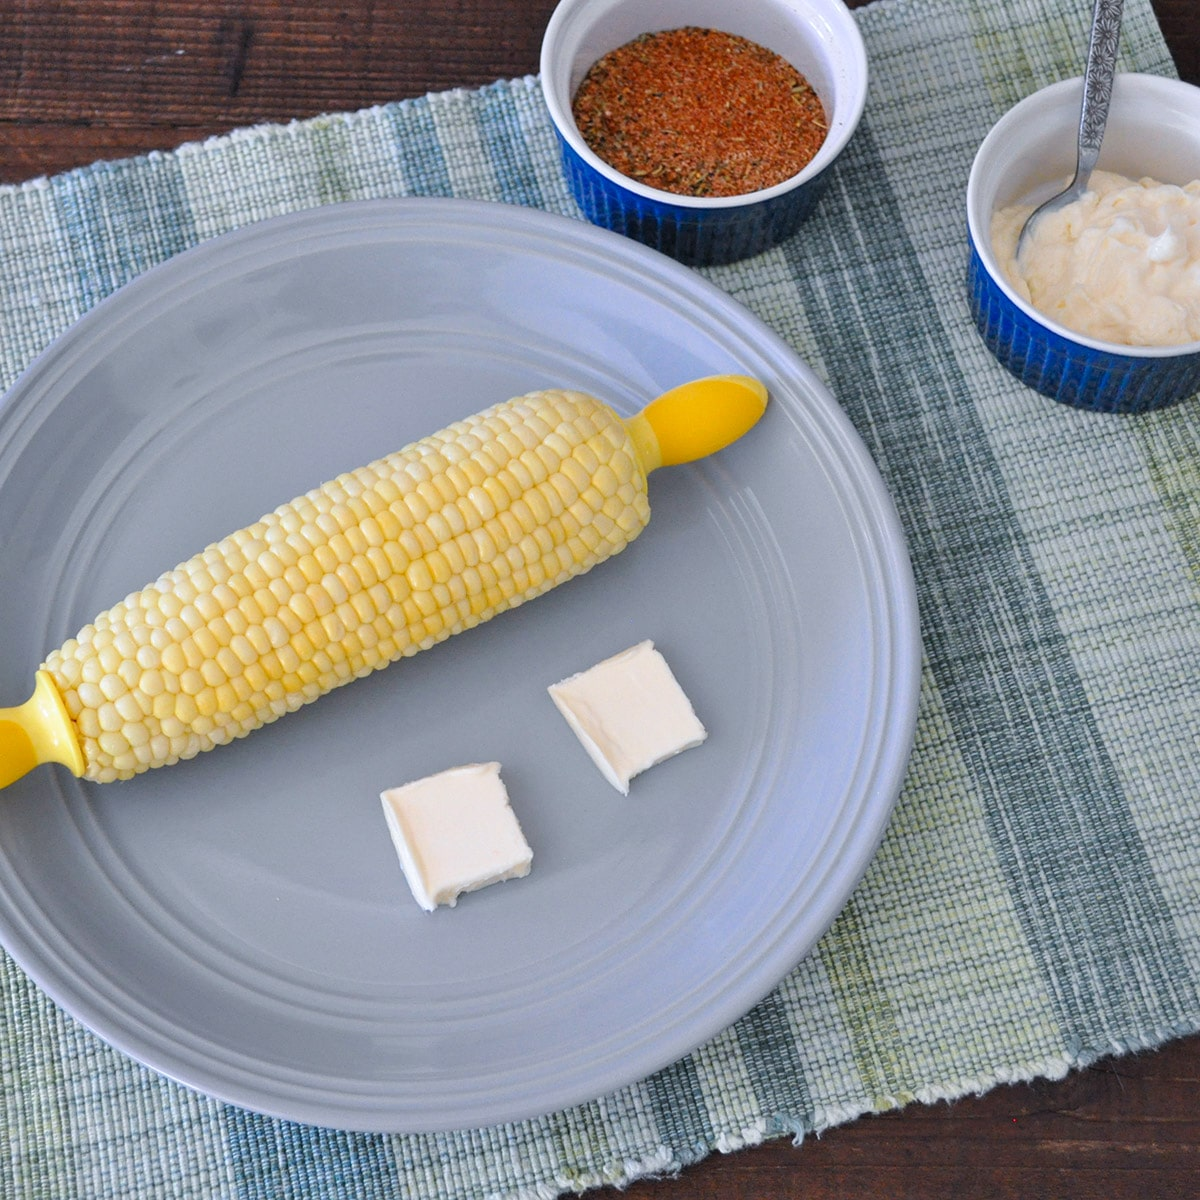 corn and butter on a gray plate